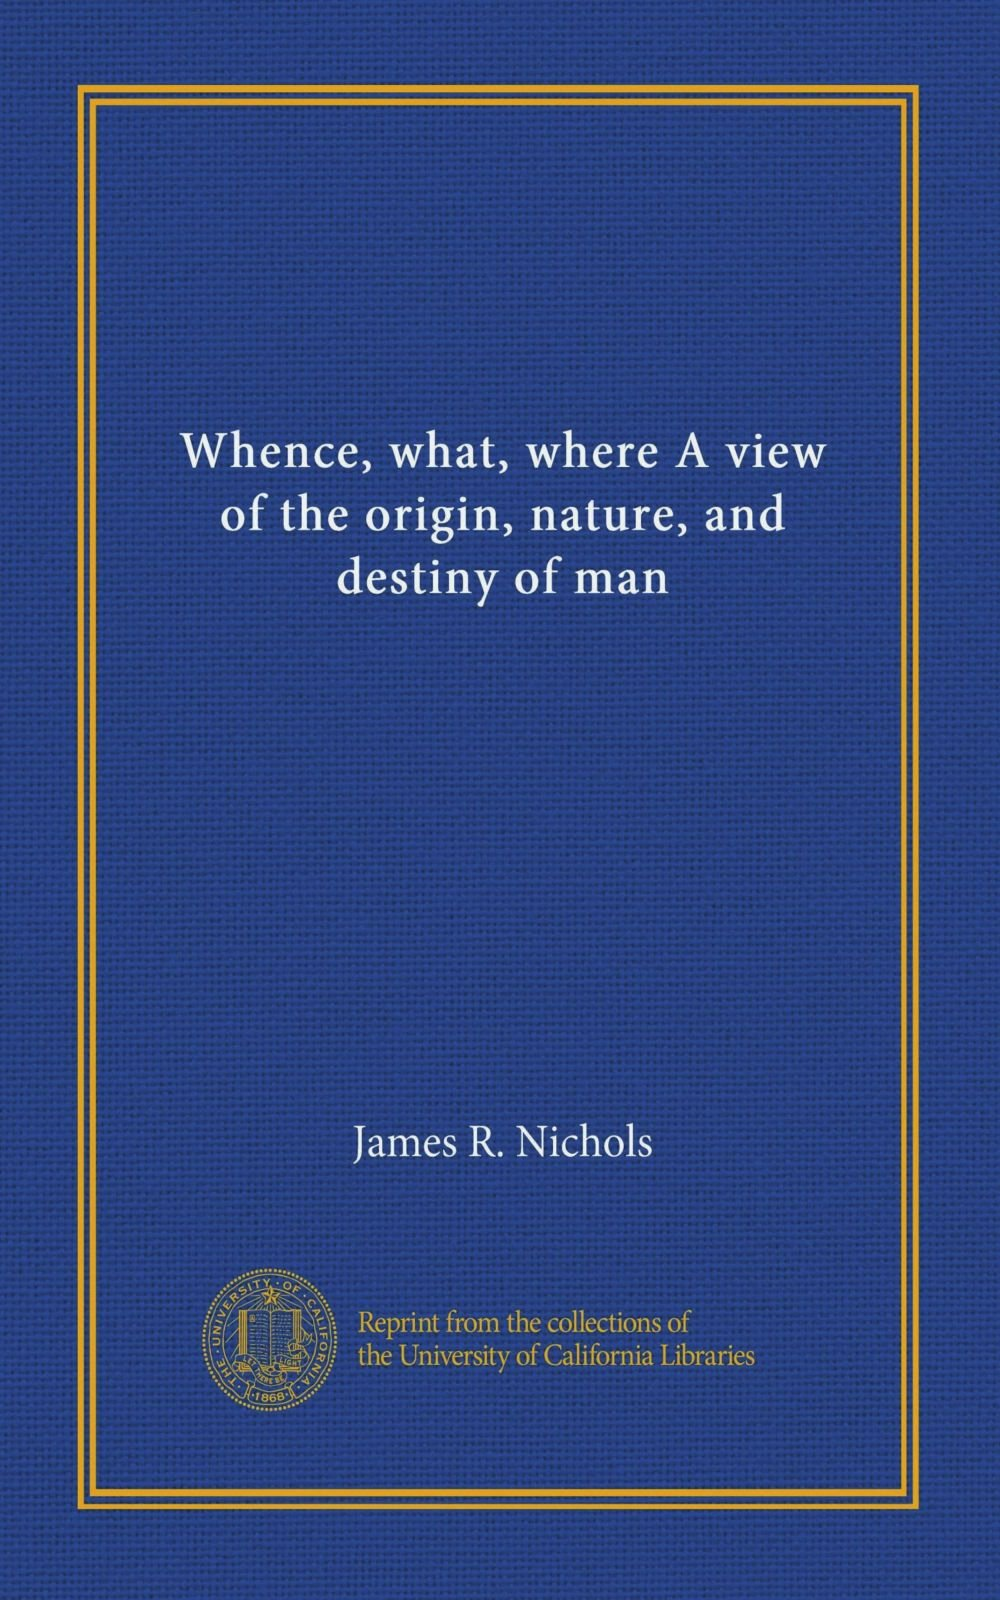 Whence, what, where? A view of the origin, nature, and destiny of man PDF